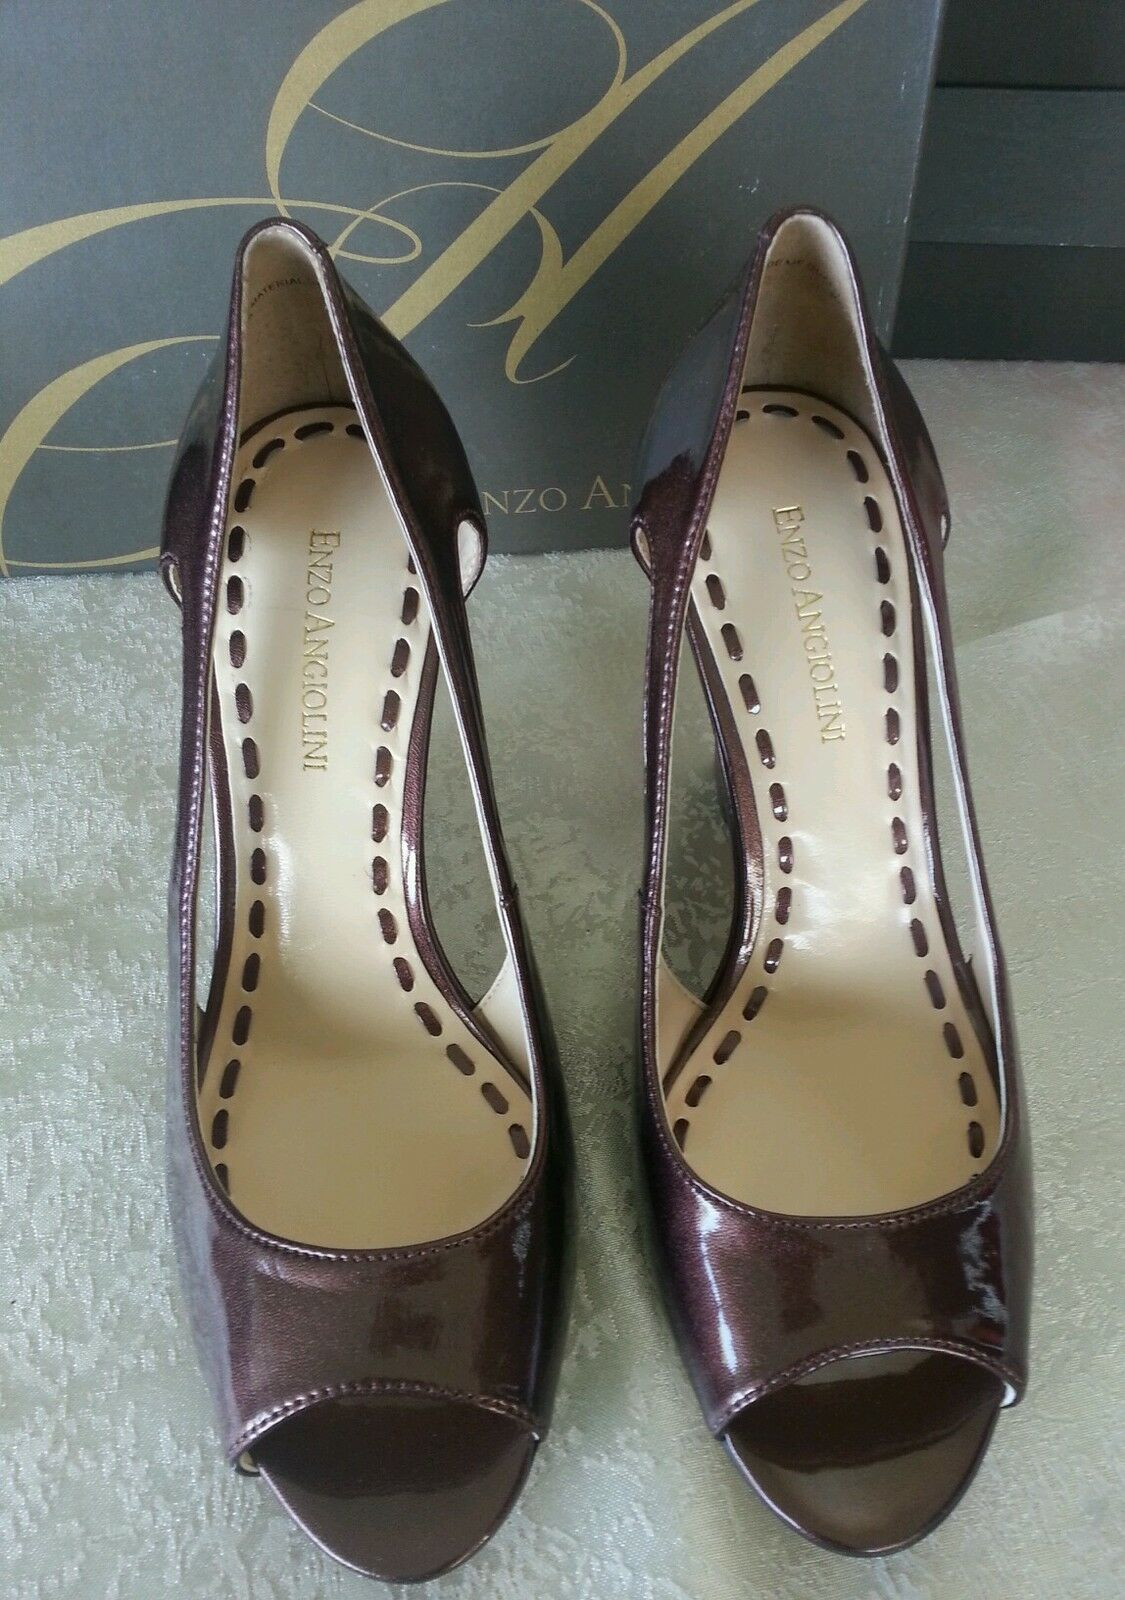 Enzo Angiolini Open-Toe NEW 7 M Pint Copper Synthetic Shiny Open-Toe Angiolini Pumps Sandale Schuhes 16498f